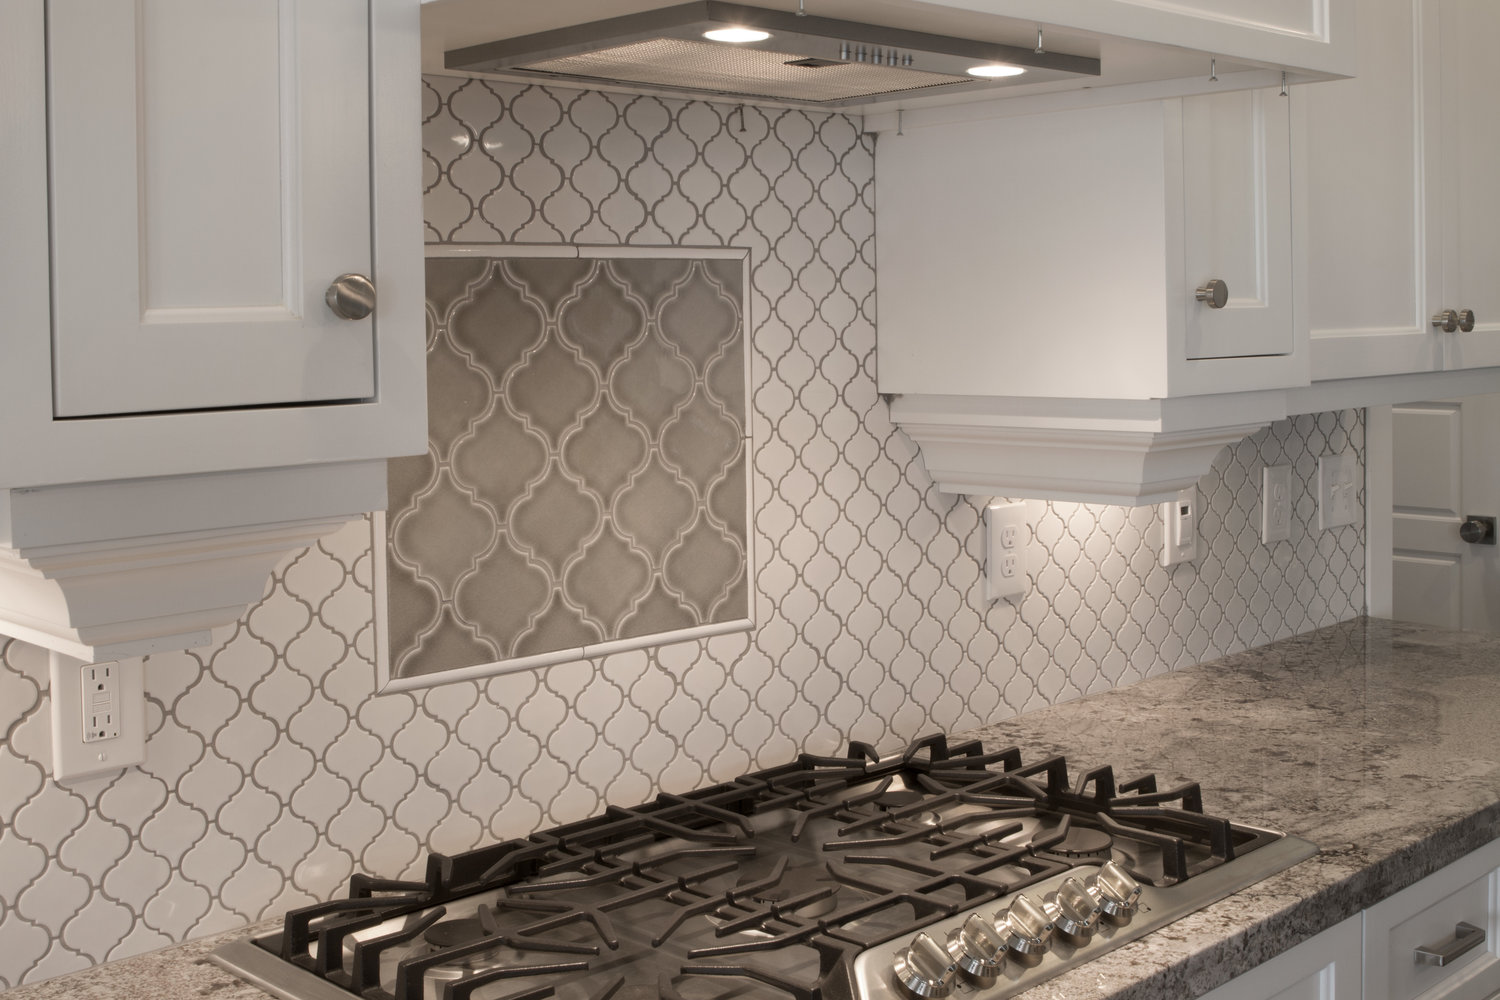 idaho rigby backsplash star remodel tile construction recent ribgy falls bathroom white kitchen new and installation around projects